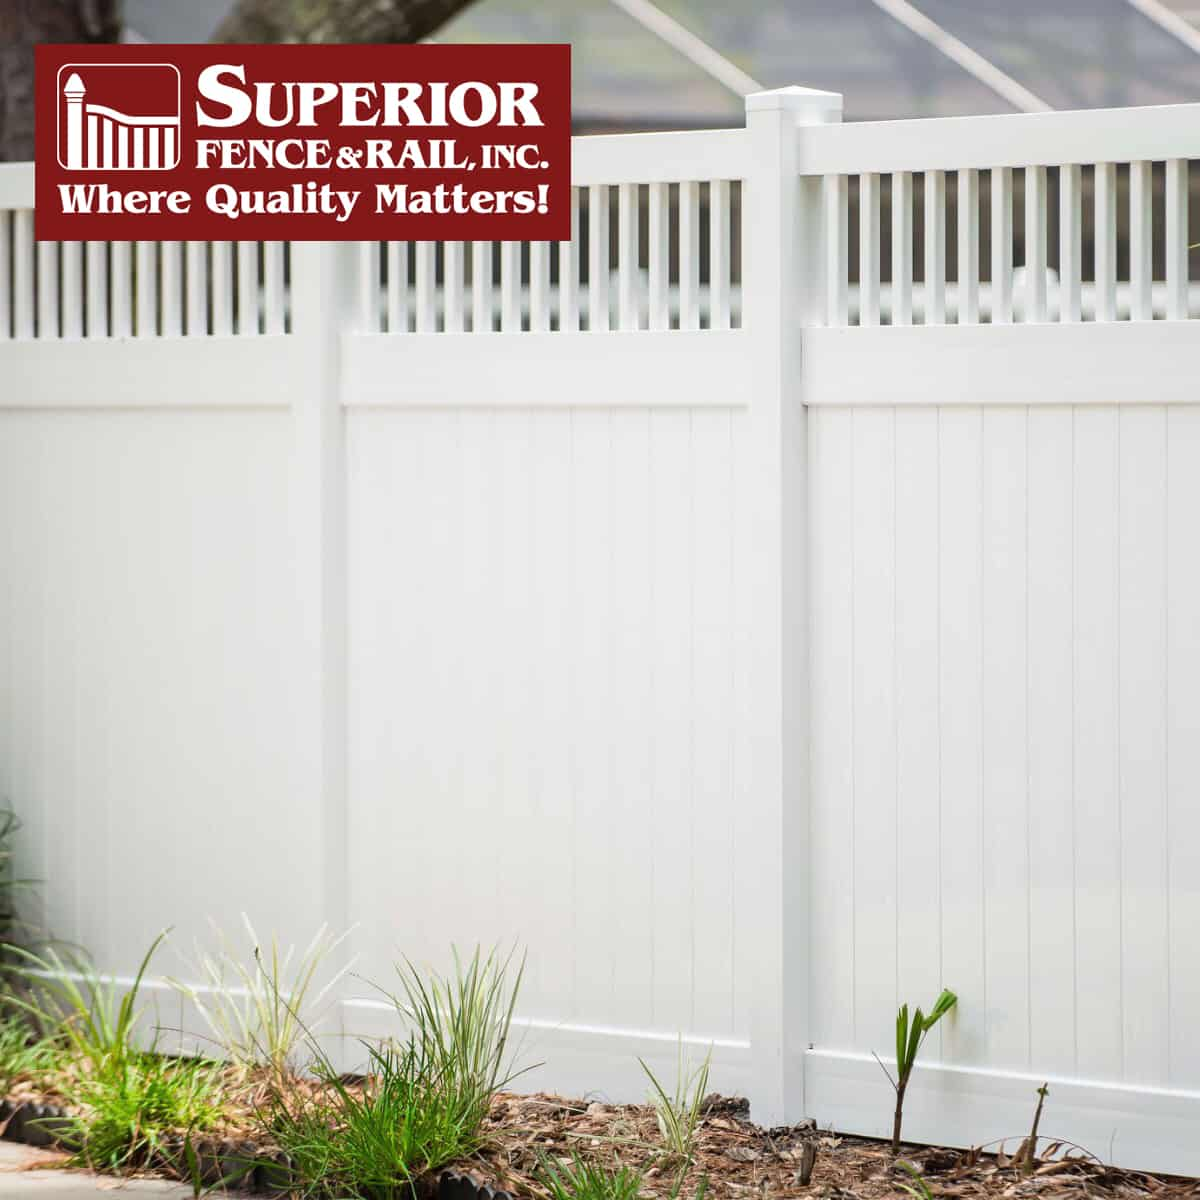 https://www.superiorfenceandrail.com/wp-content/uploads/2020/12/Littleton-Fence-Company-Contractor.jpg